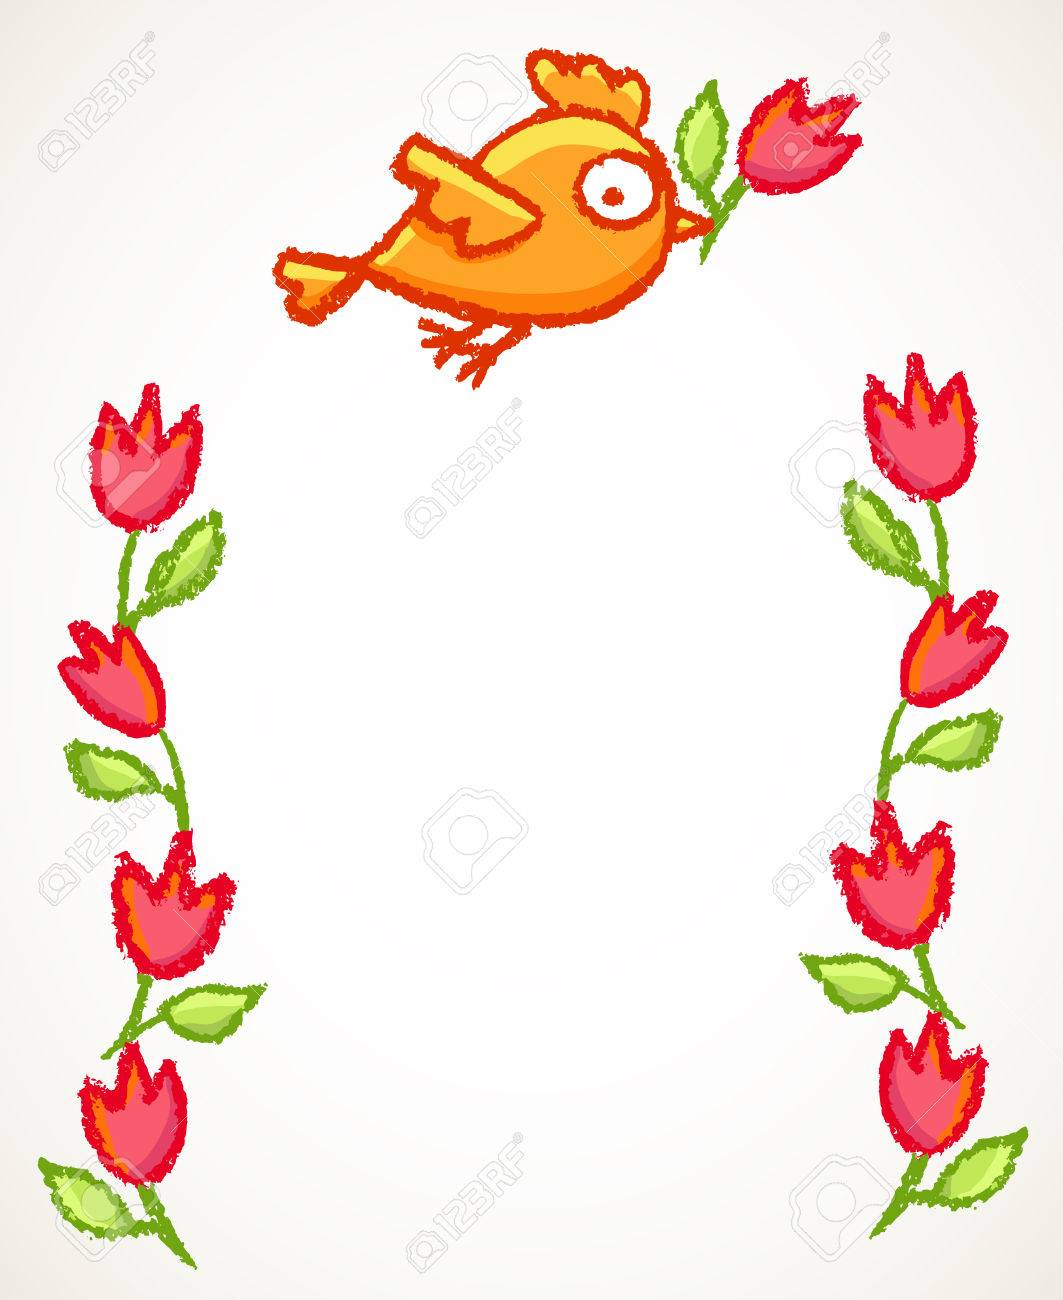 93ff2acf00a Cute little hand drawn orange bird and red flowers frame. Cartoon vector  border with funny